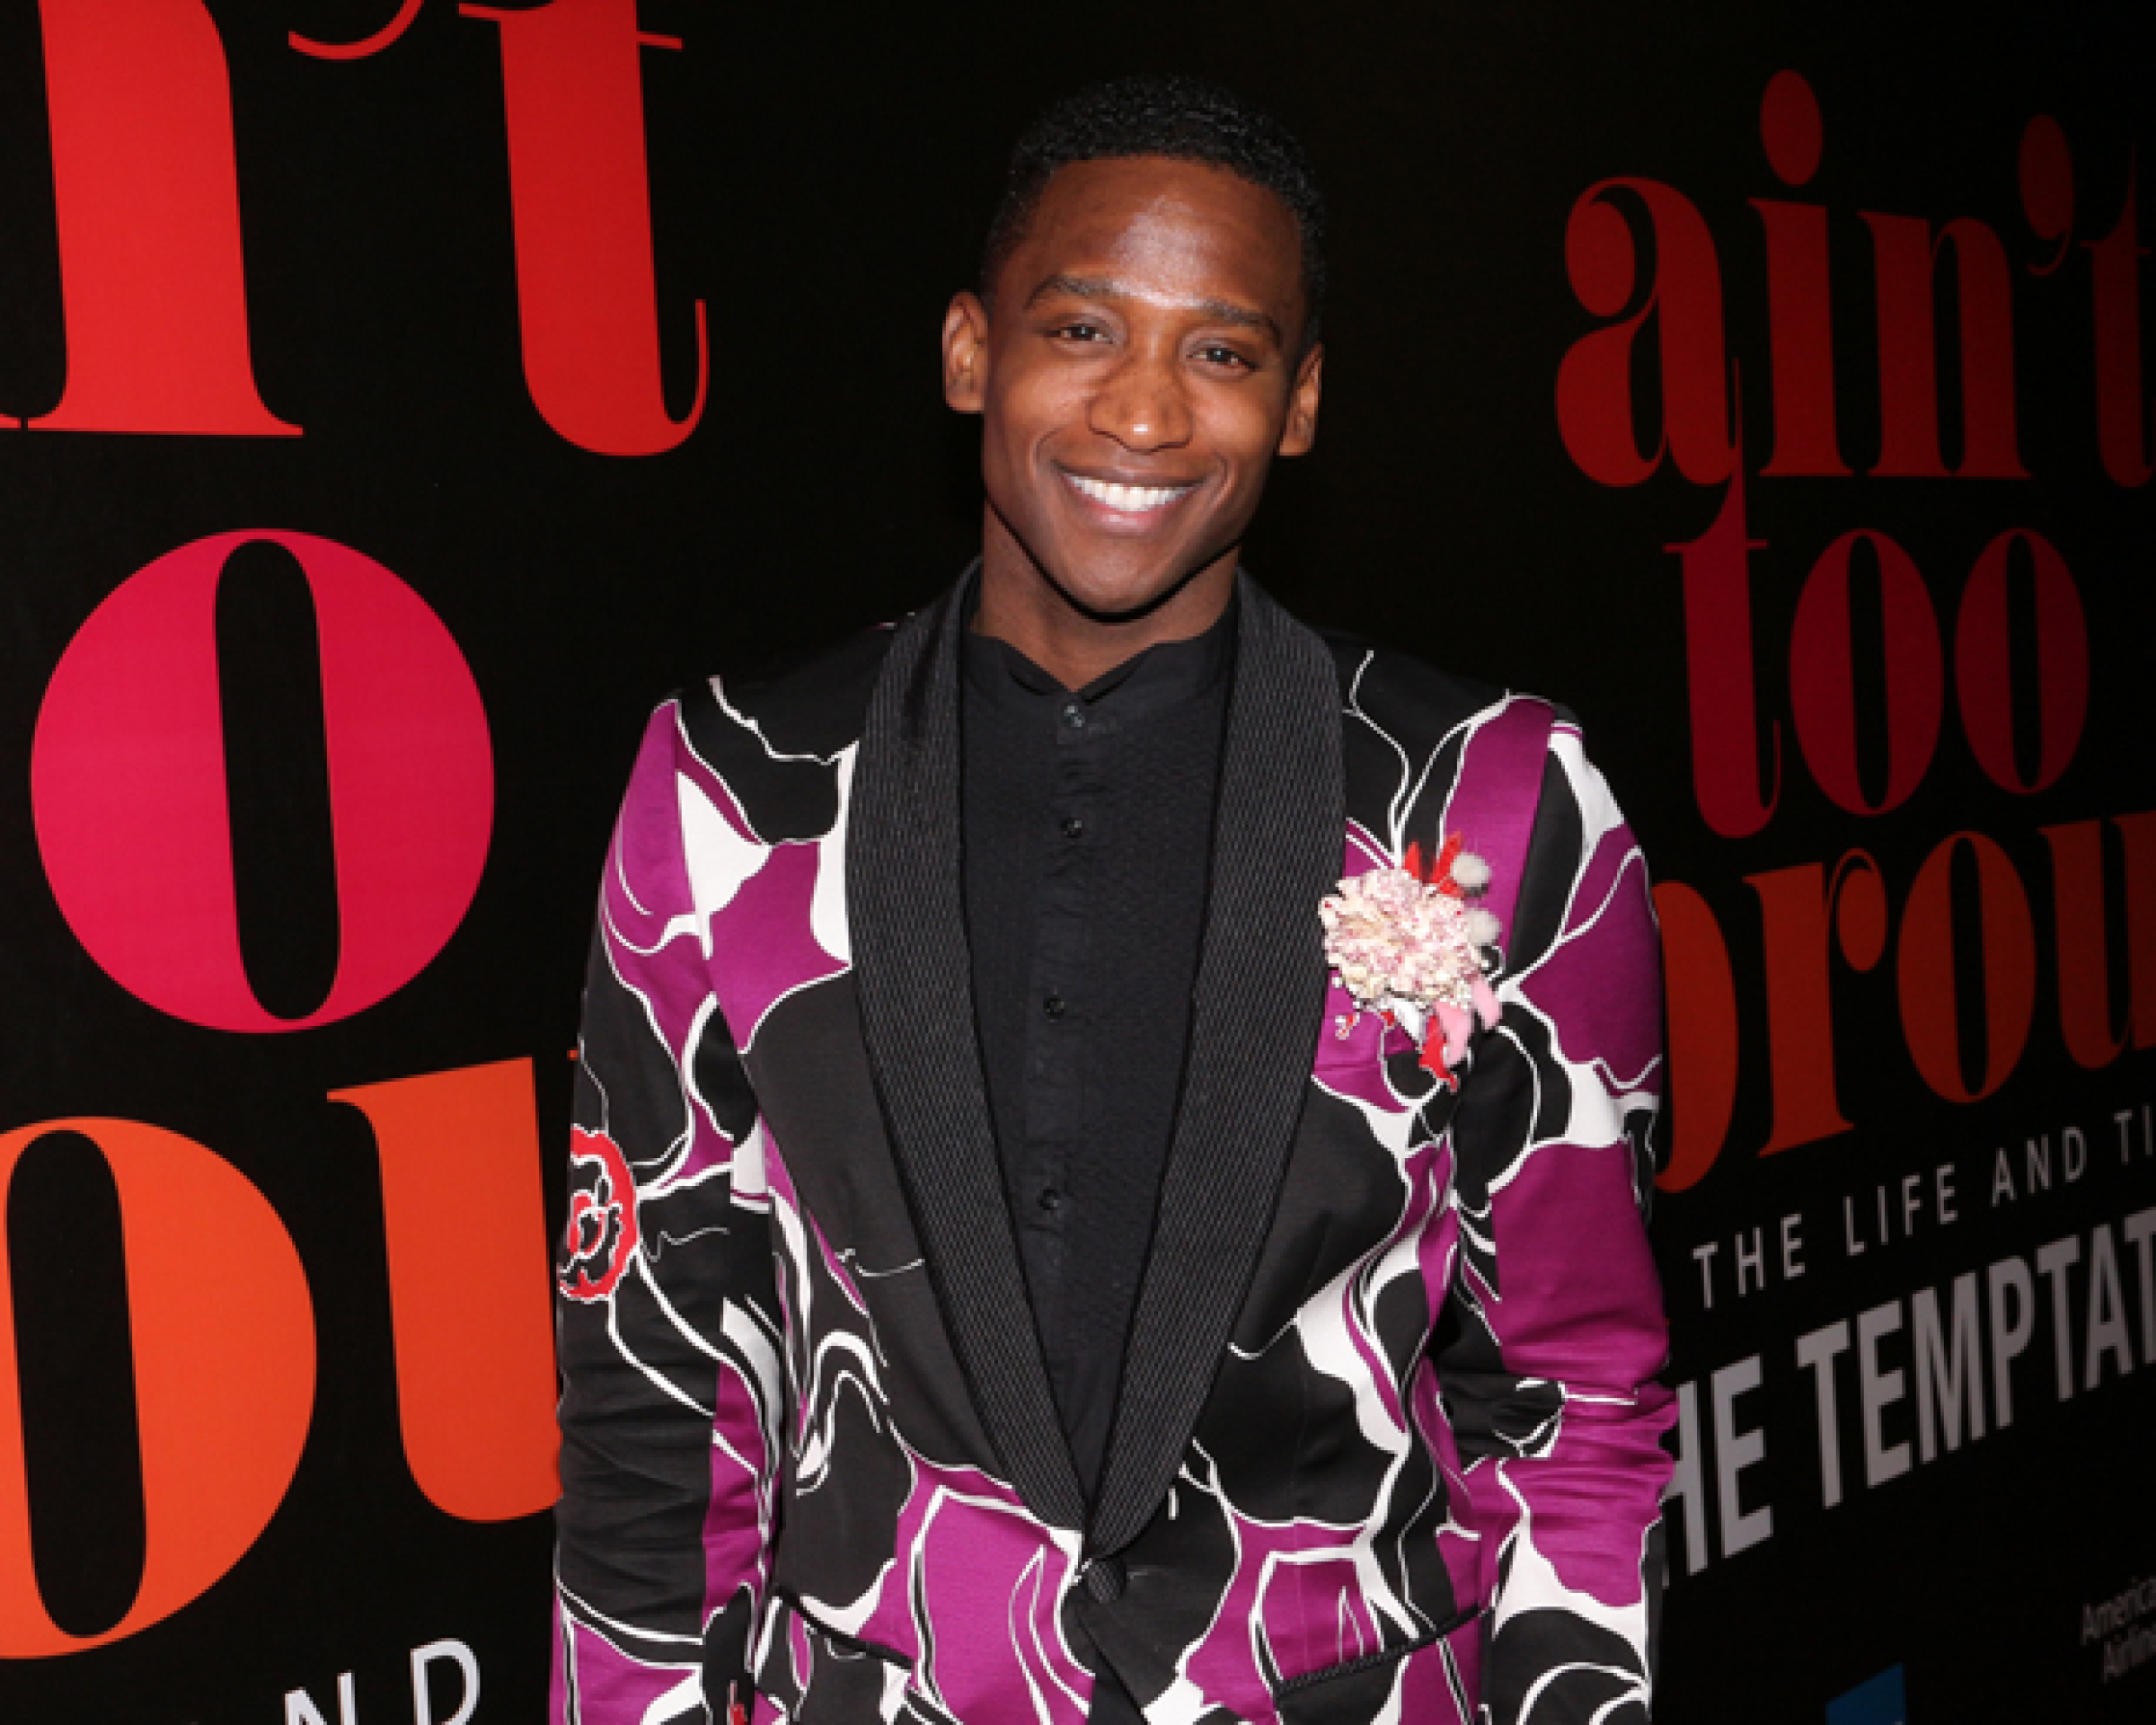 Jelani Remy, Ali Ewoldt and More to Star in I WISH: THE ROLES THAT COULD HAVE BEEN at Feinstein's/54 Below